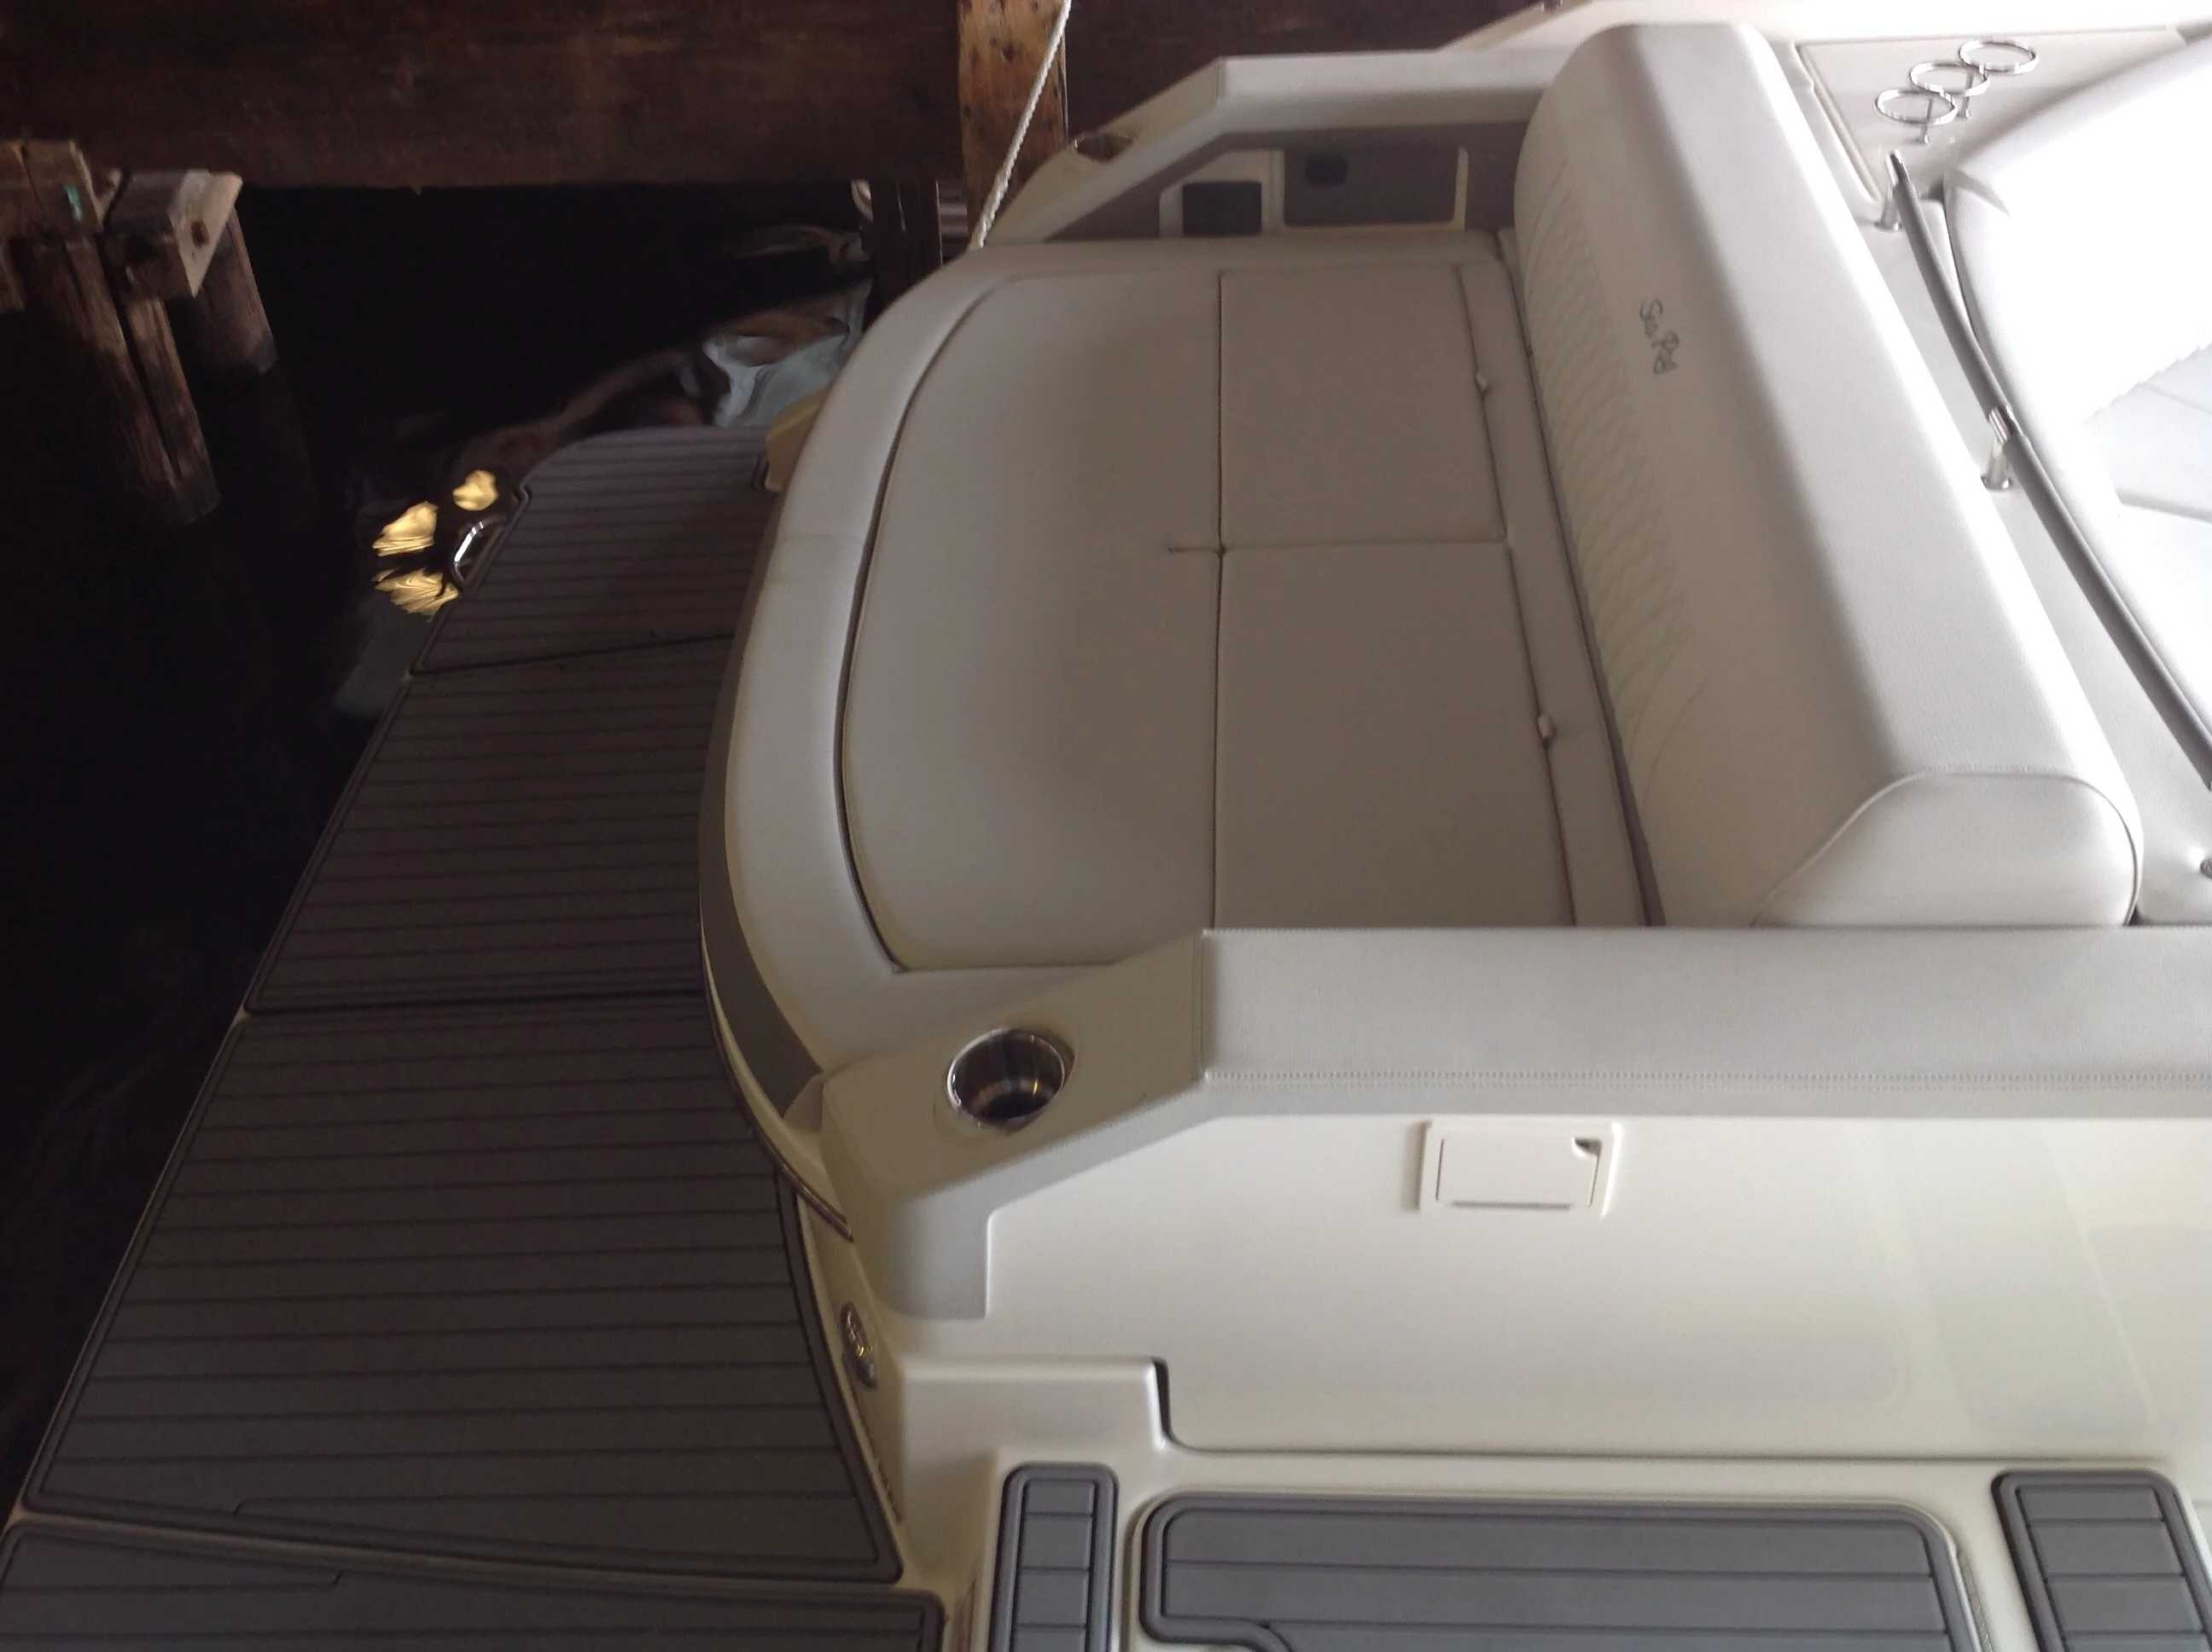 2021 Sea Ray boat for sale, model of the boat is 310 SLX & Image # 19 of 20